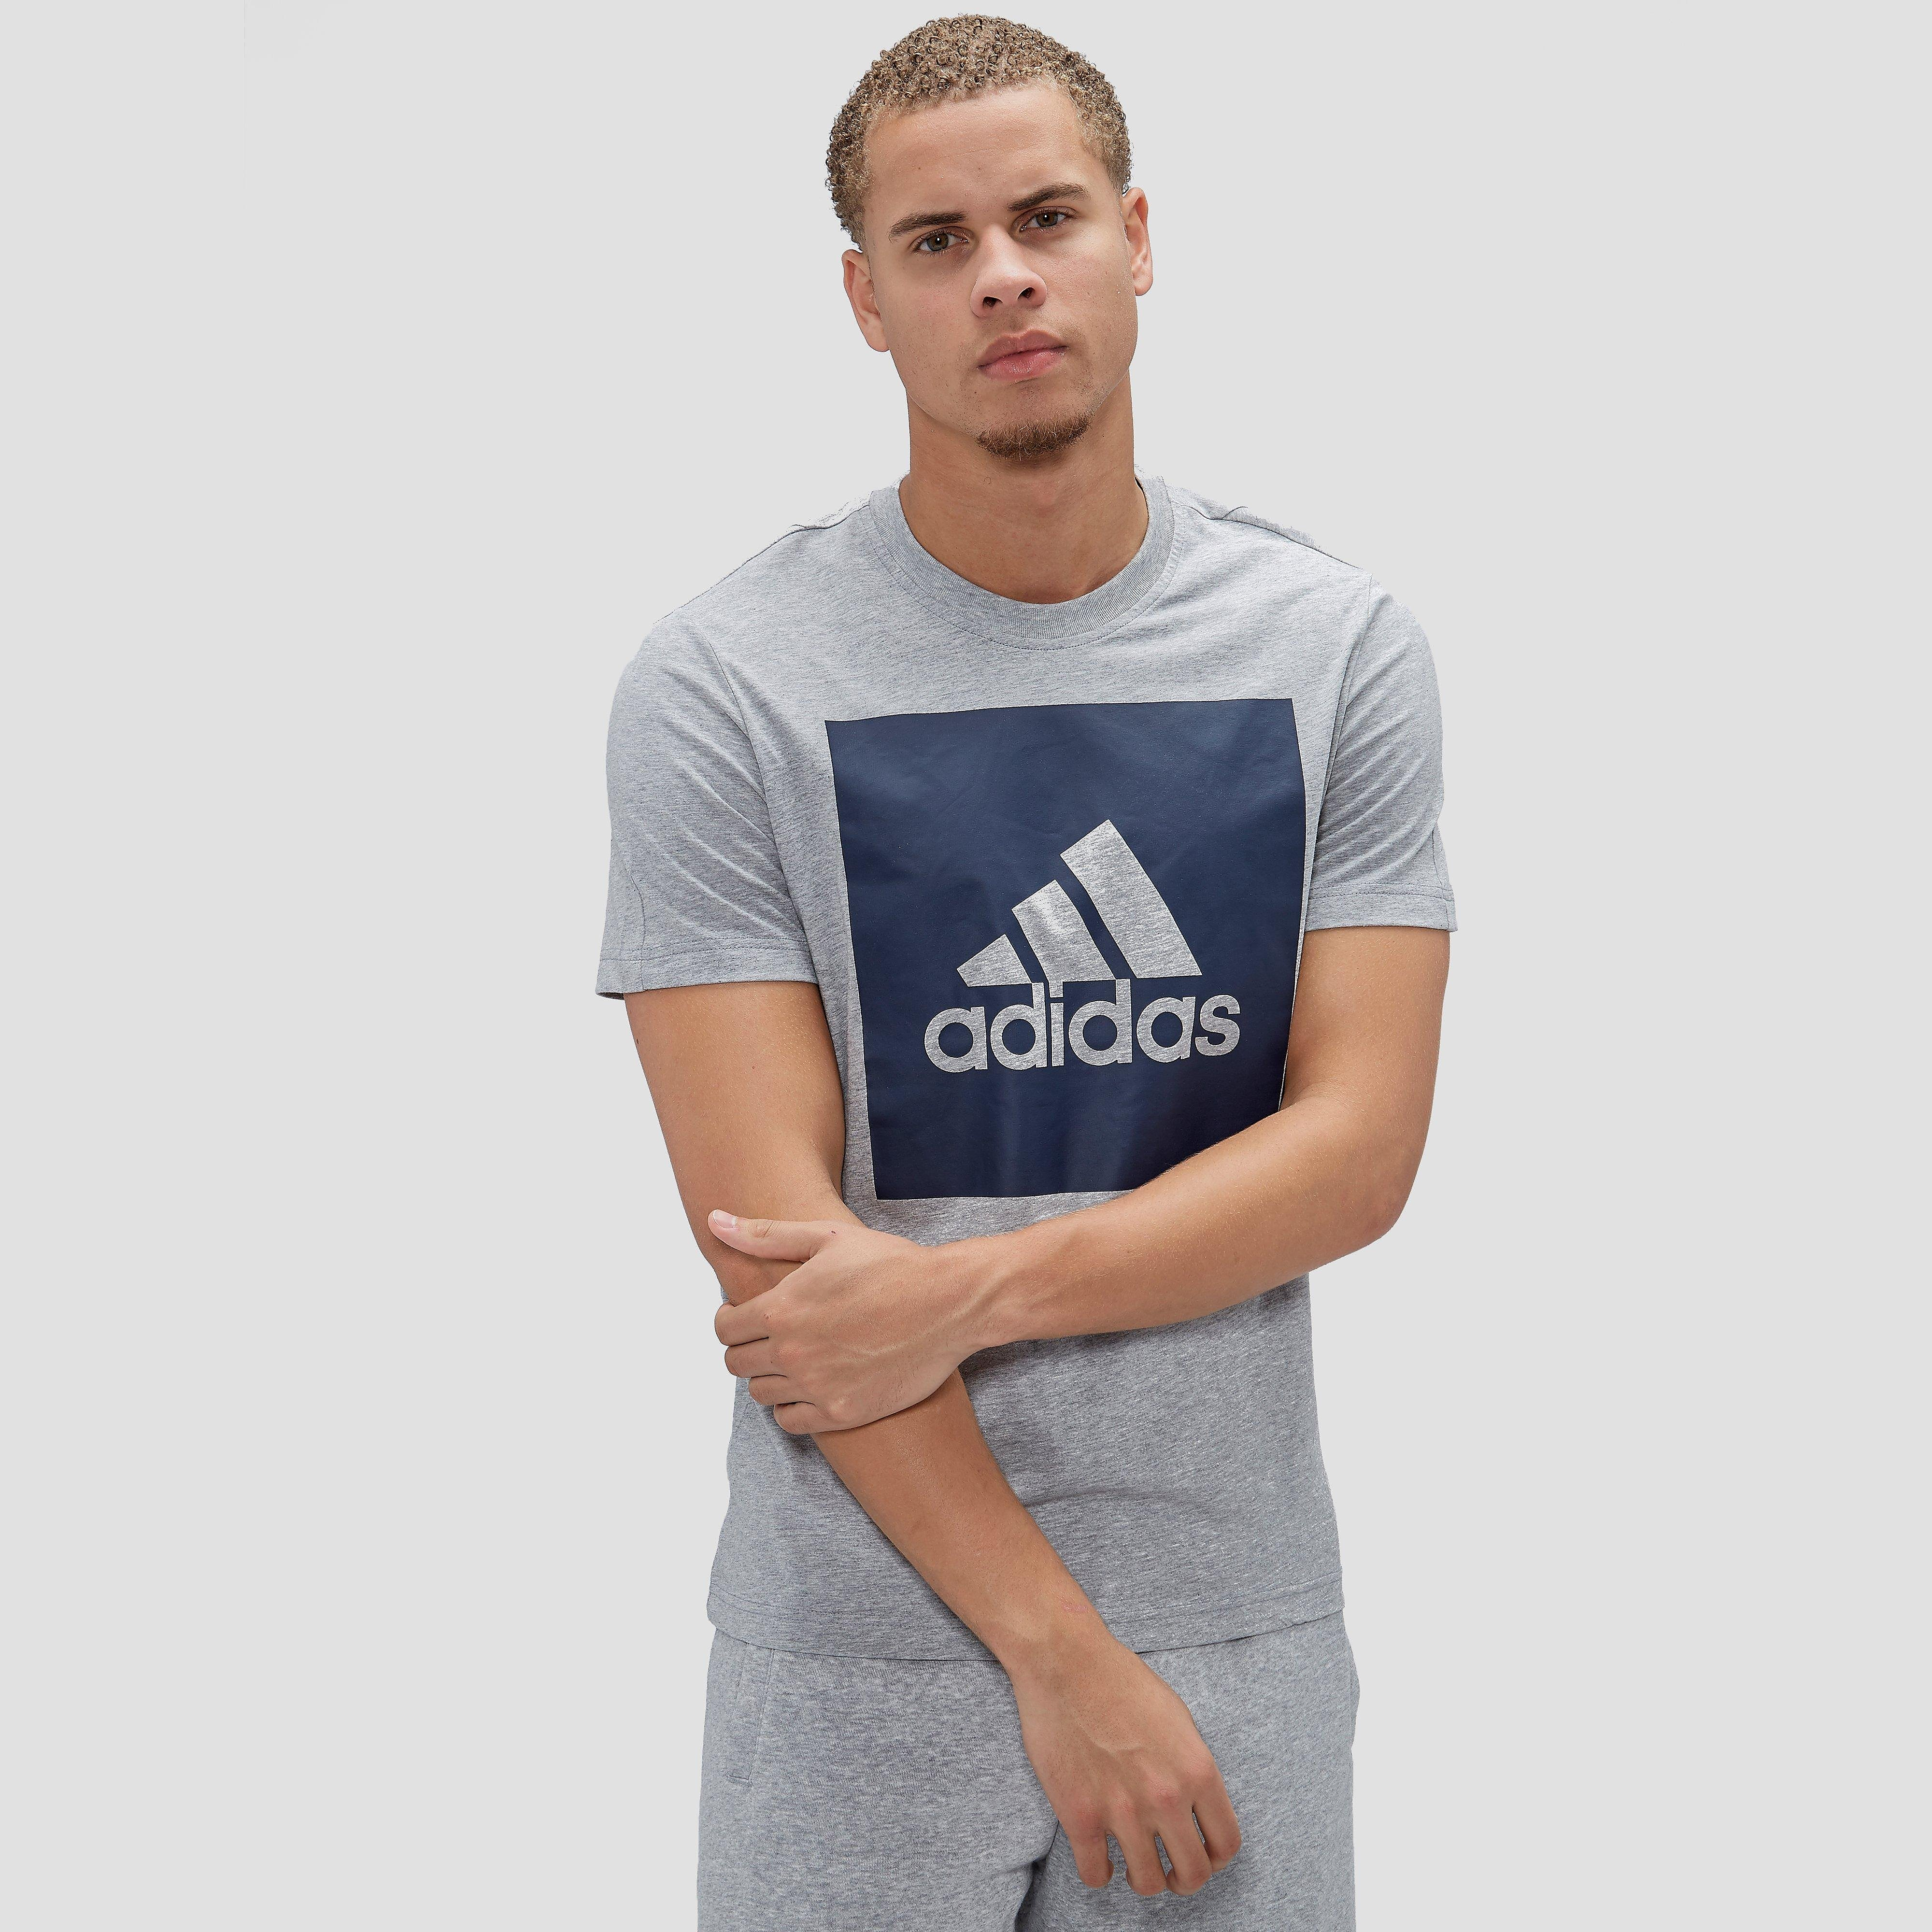 ADIDAS ESSENTIALS BIG LOGO SHIRT GRIJS/BLAUW HEREN